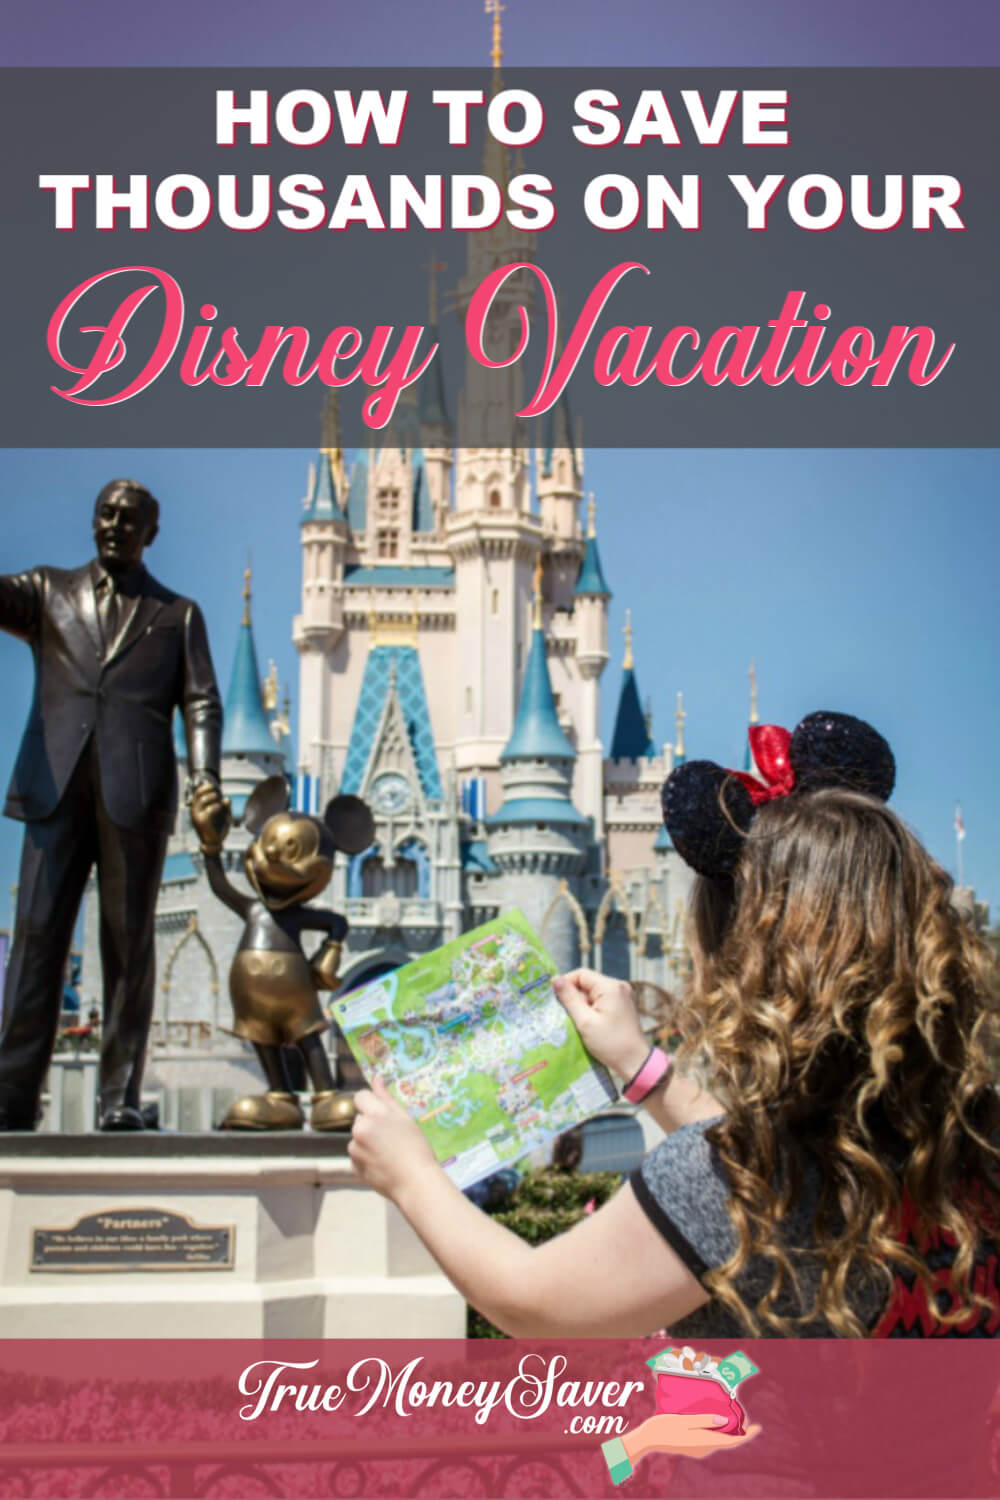 Disney can be so expensive. You can enjoy a Disney vacation on a budget and you won\'t need a lot of money either if you just follow these tips! #truecouponing #disney #familyvacation #savings #debtfree